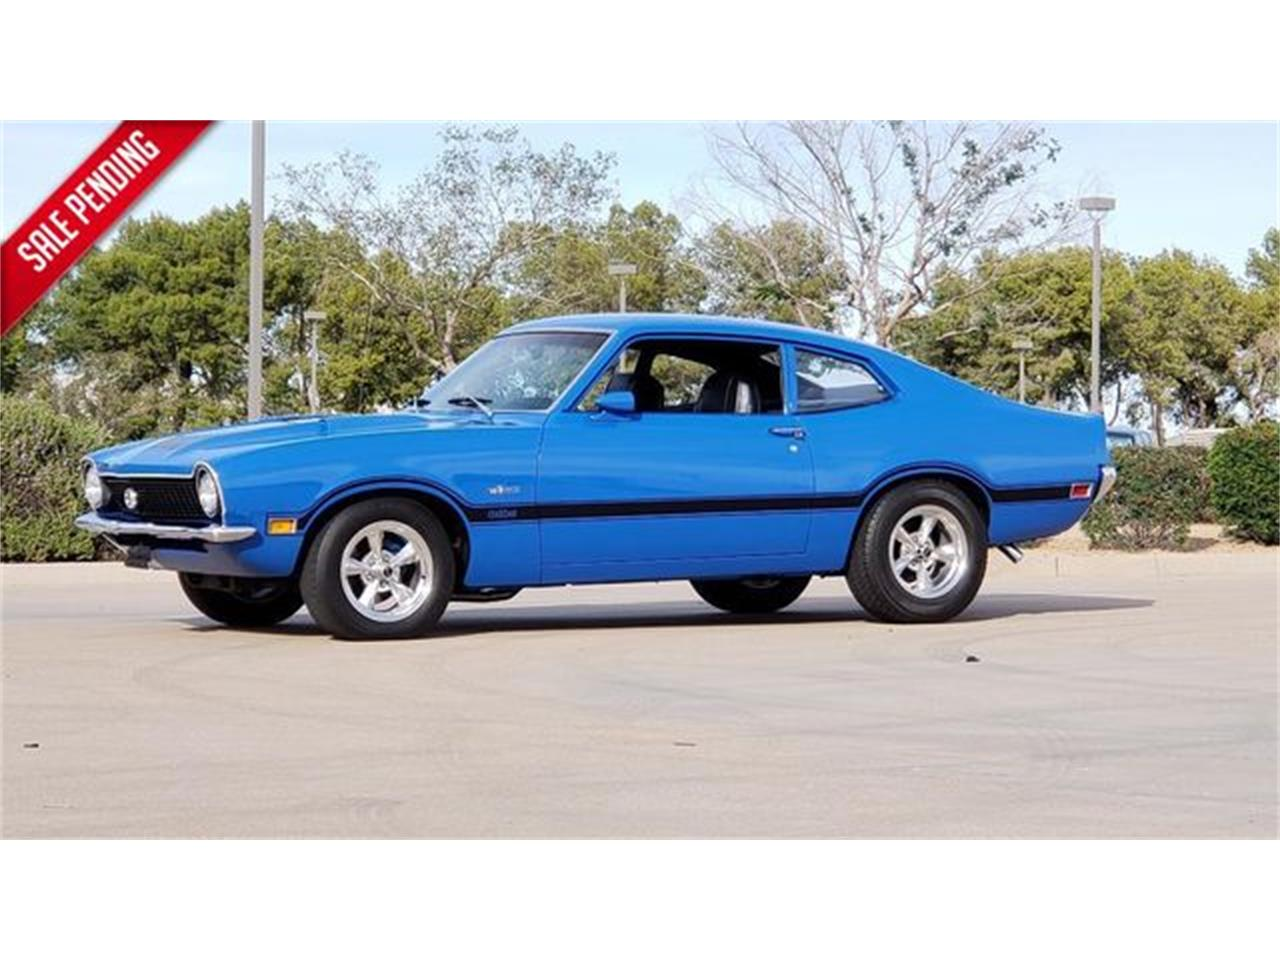 Ford Maverick For Sale >> For Sale 1970 Ford Maverick In Phoenix Arizona